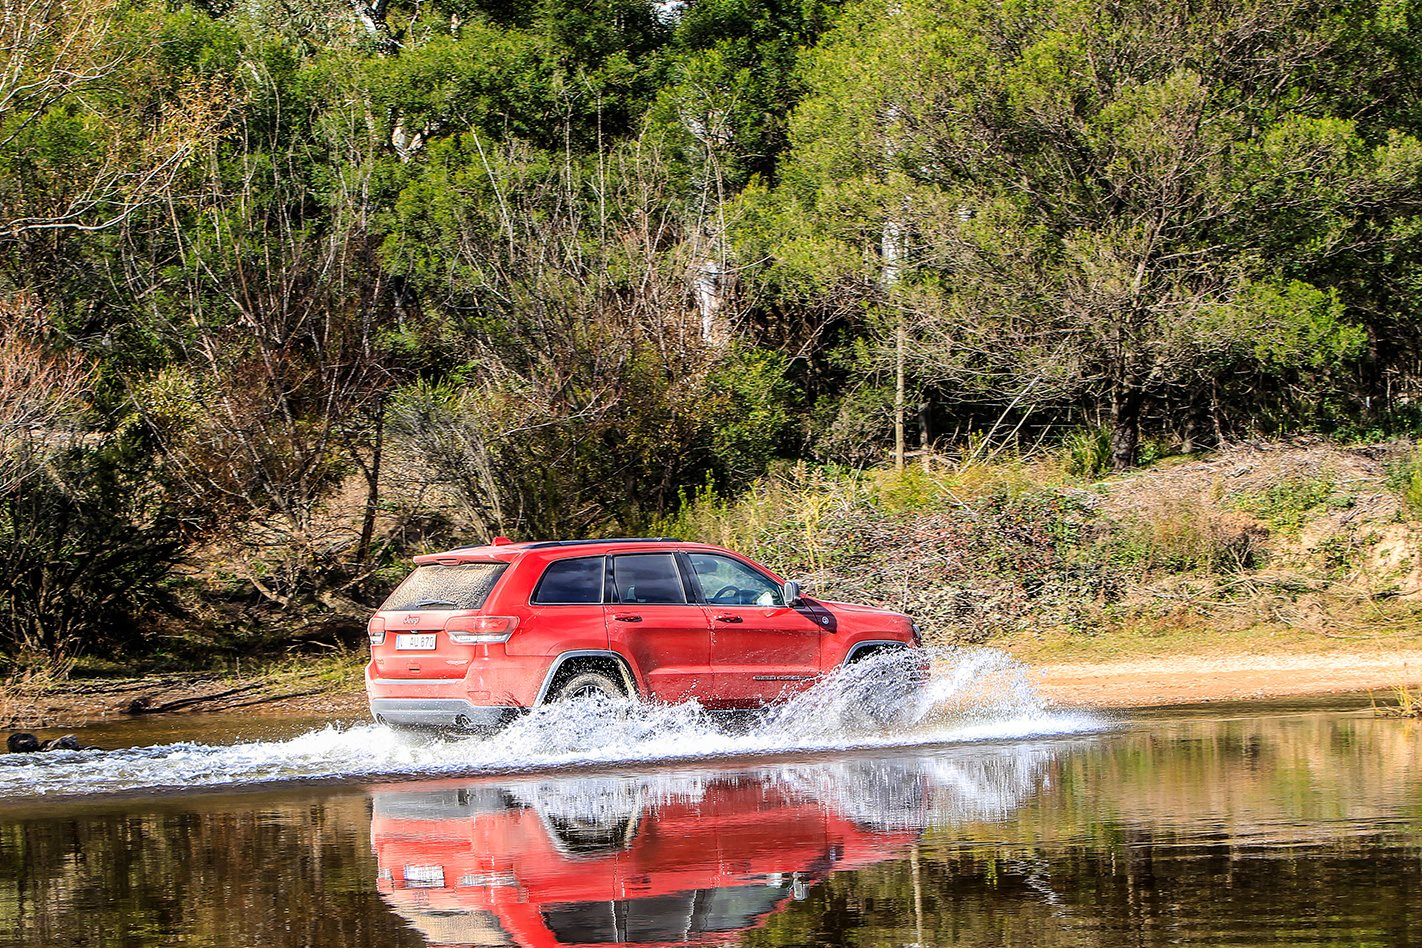 Jeep Grand Cherokee Trailhawk water crossing